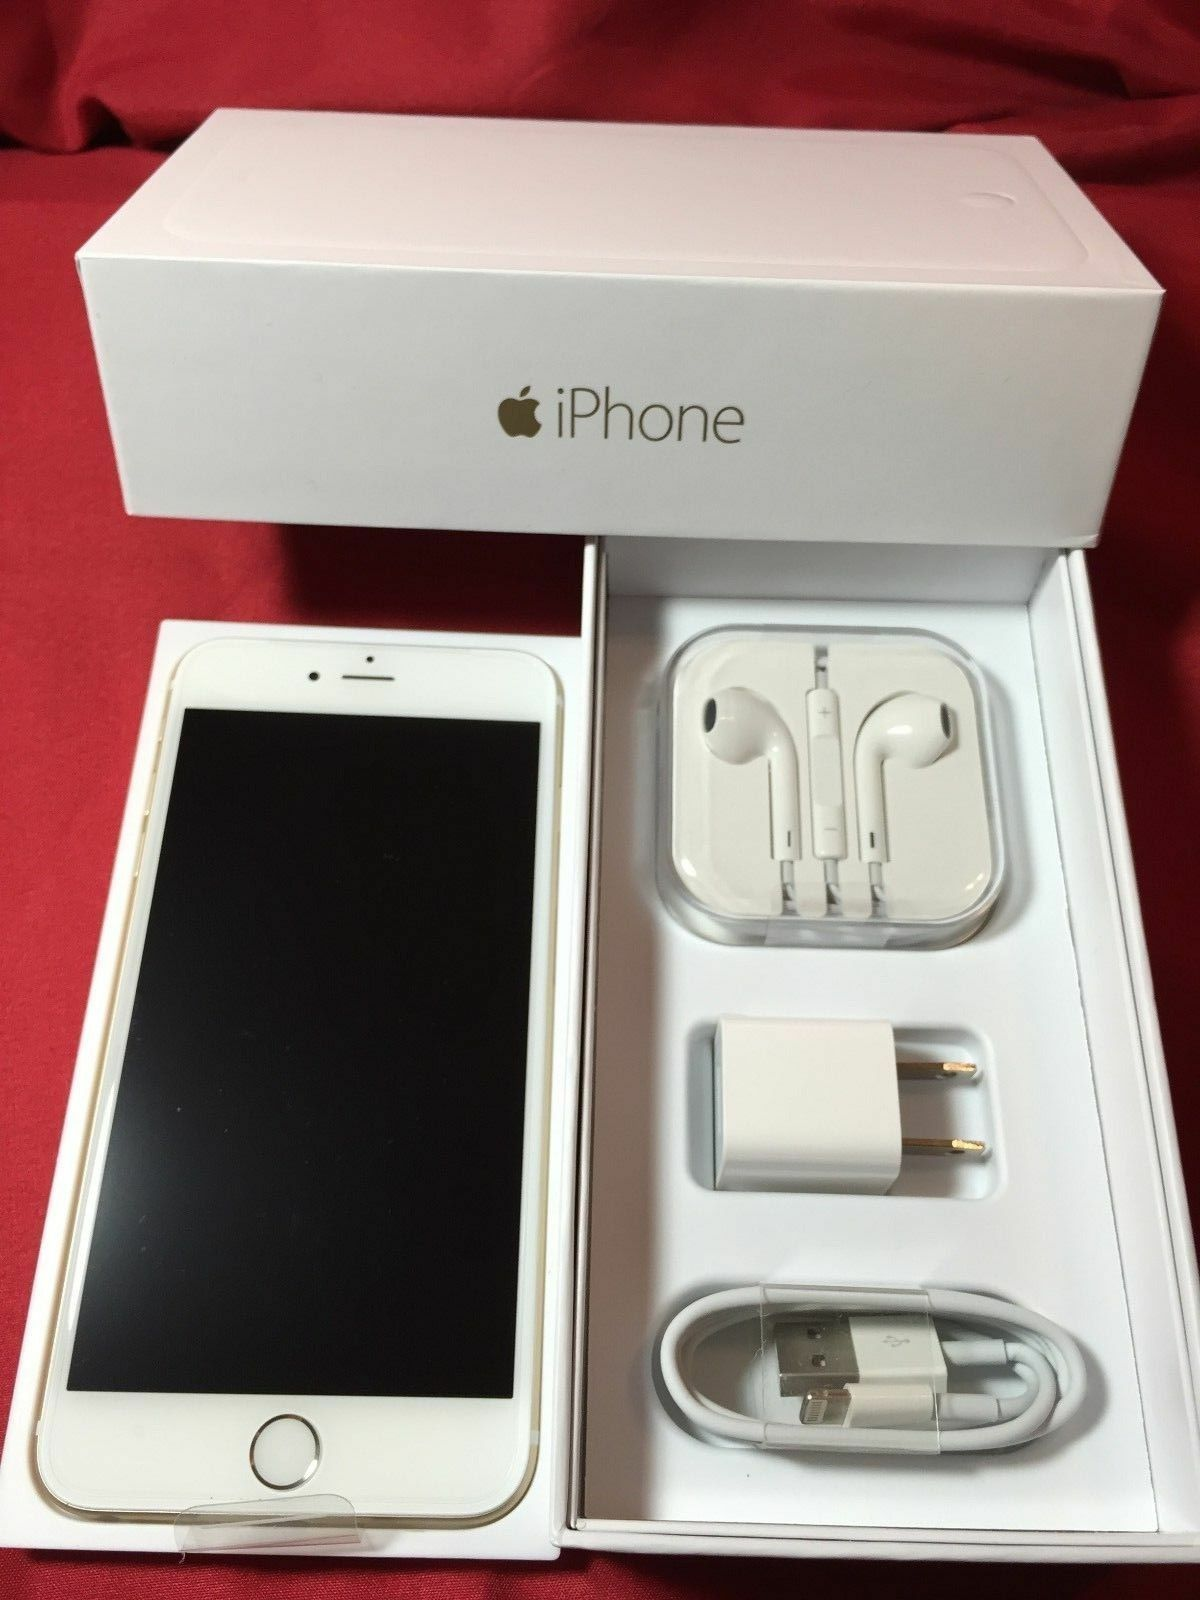 Apple iPhone 6 Plus / 6 manufacturing facility Unlocked Gold area grey Silver Smartphone AU